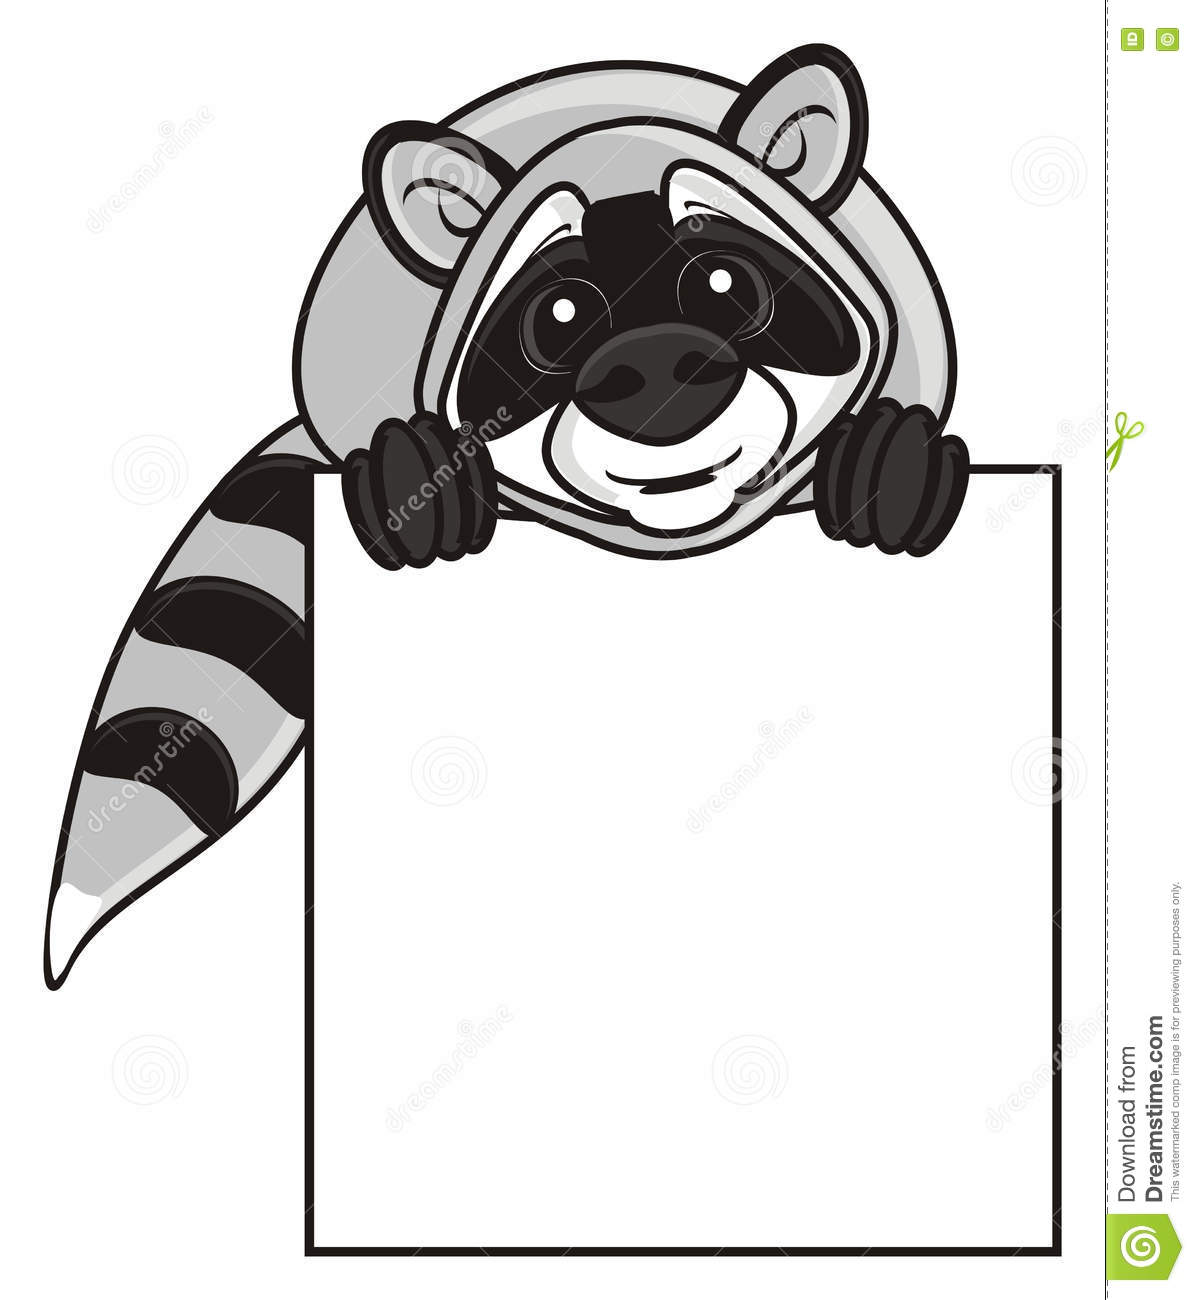 Raccoon Holding An Empty Plate Stock Illustration